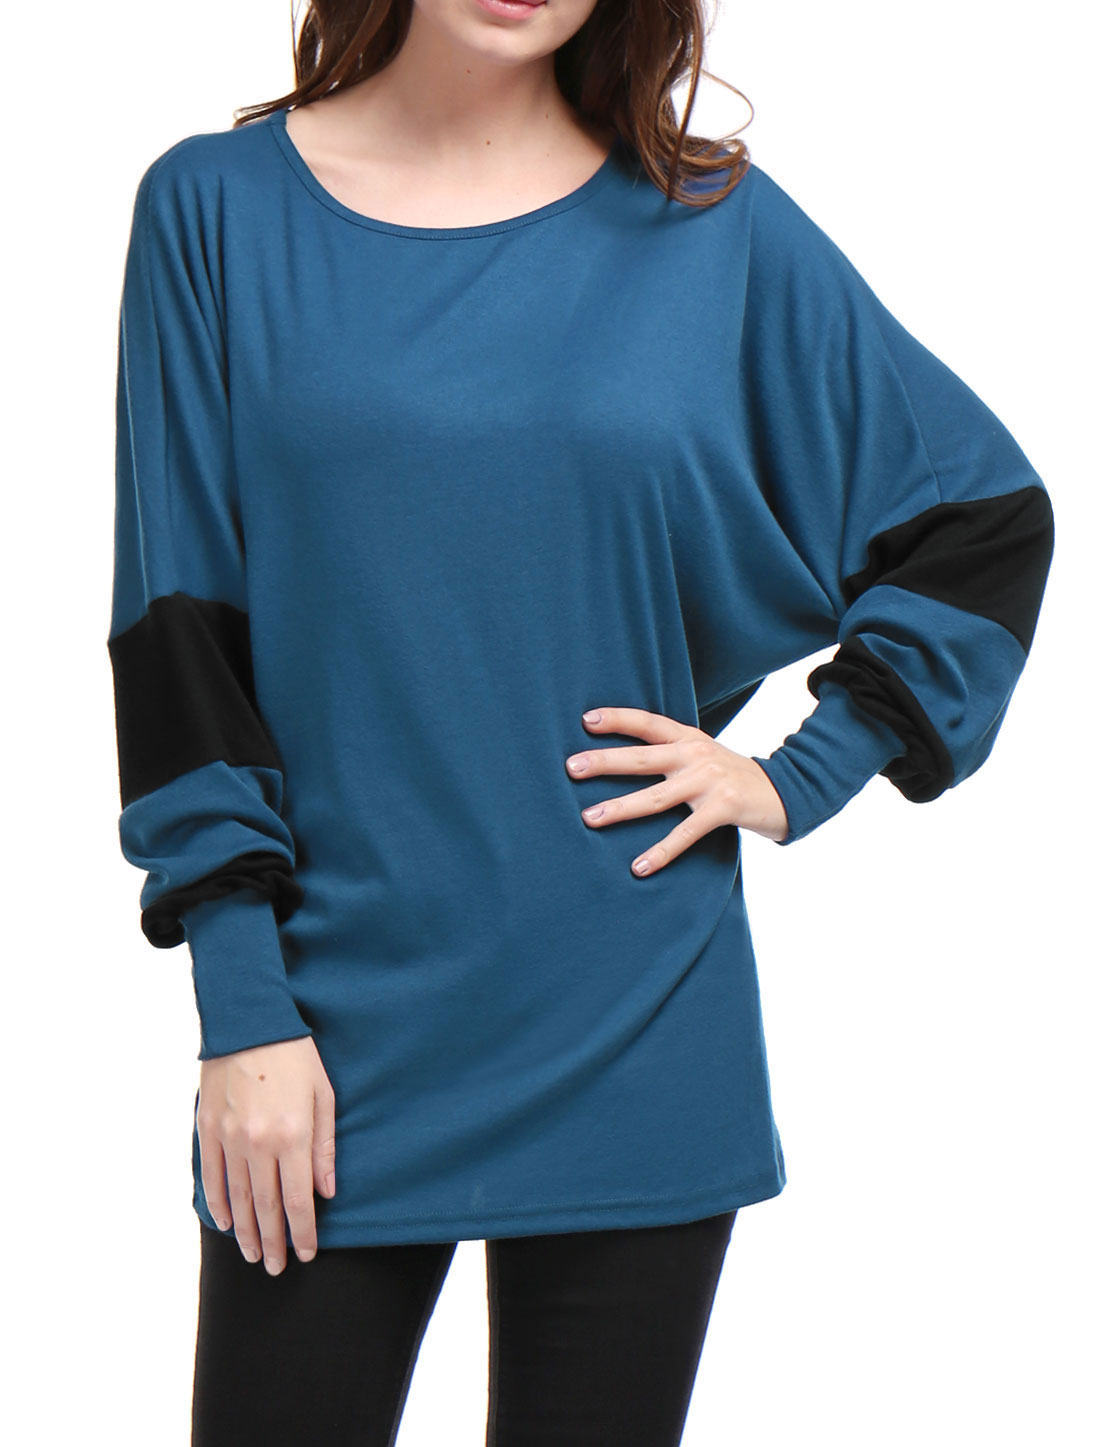 Women Color Block Batwing Sleeves Loose Tunic Top Blue S